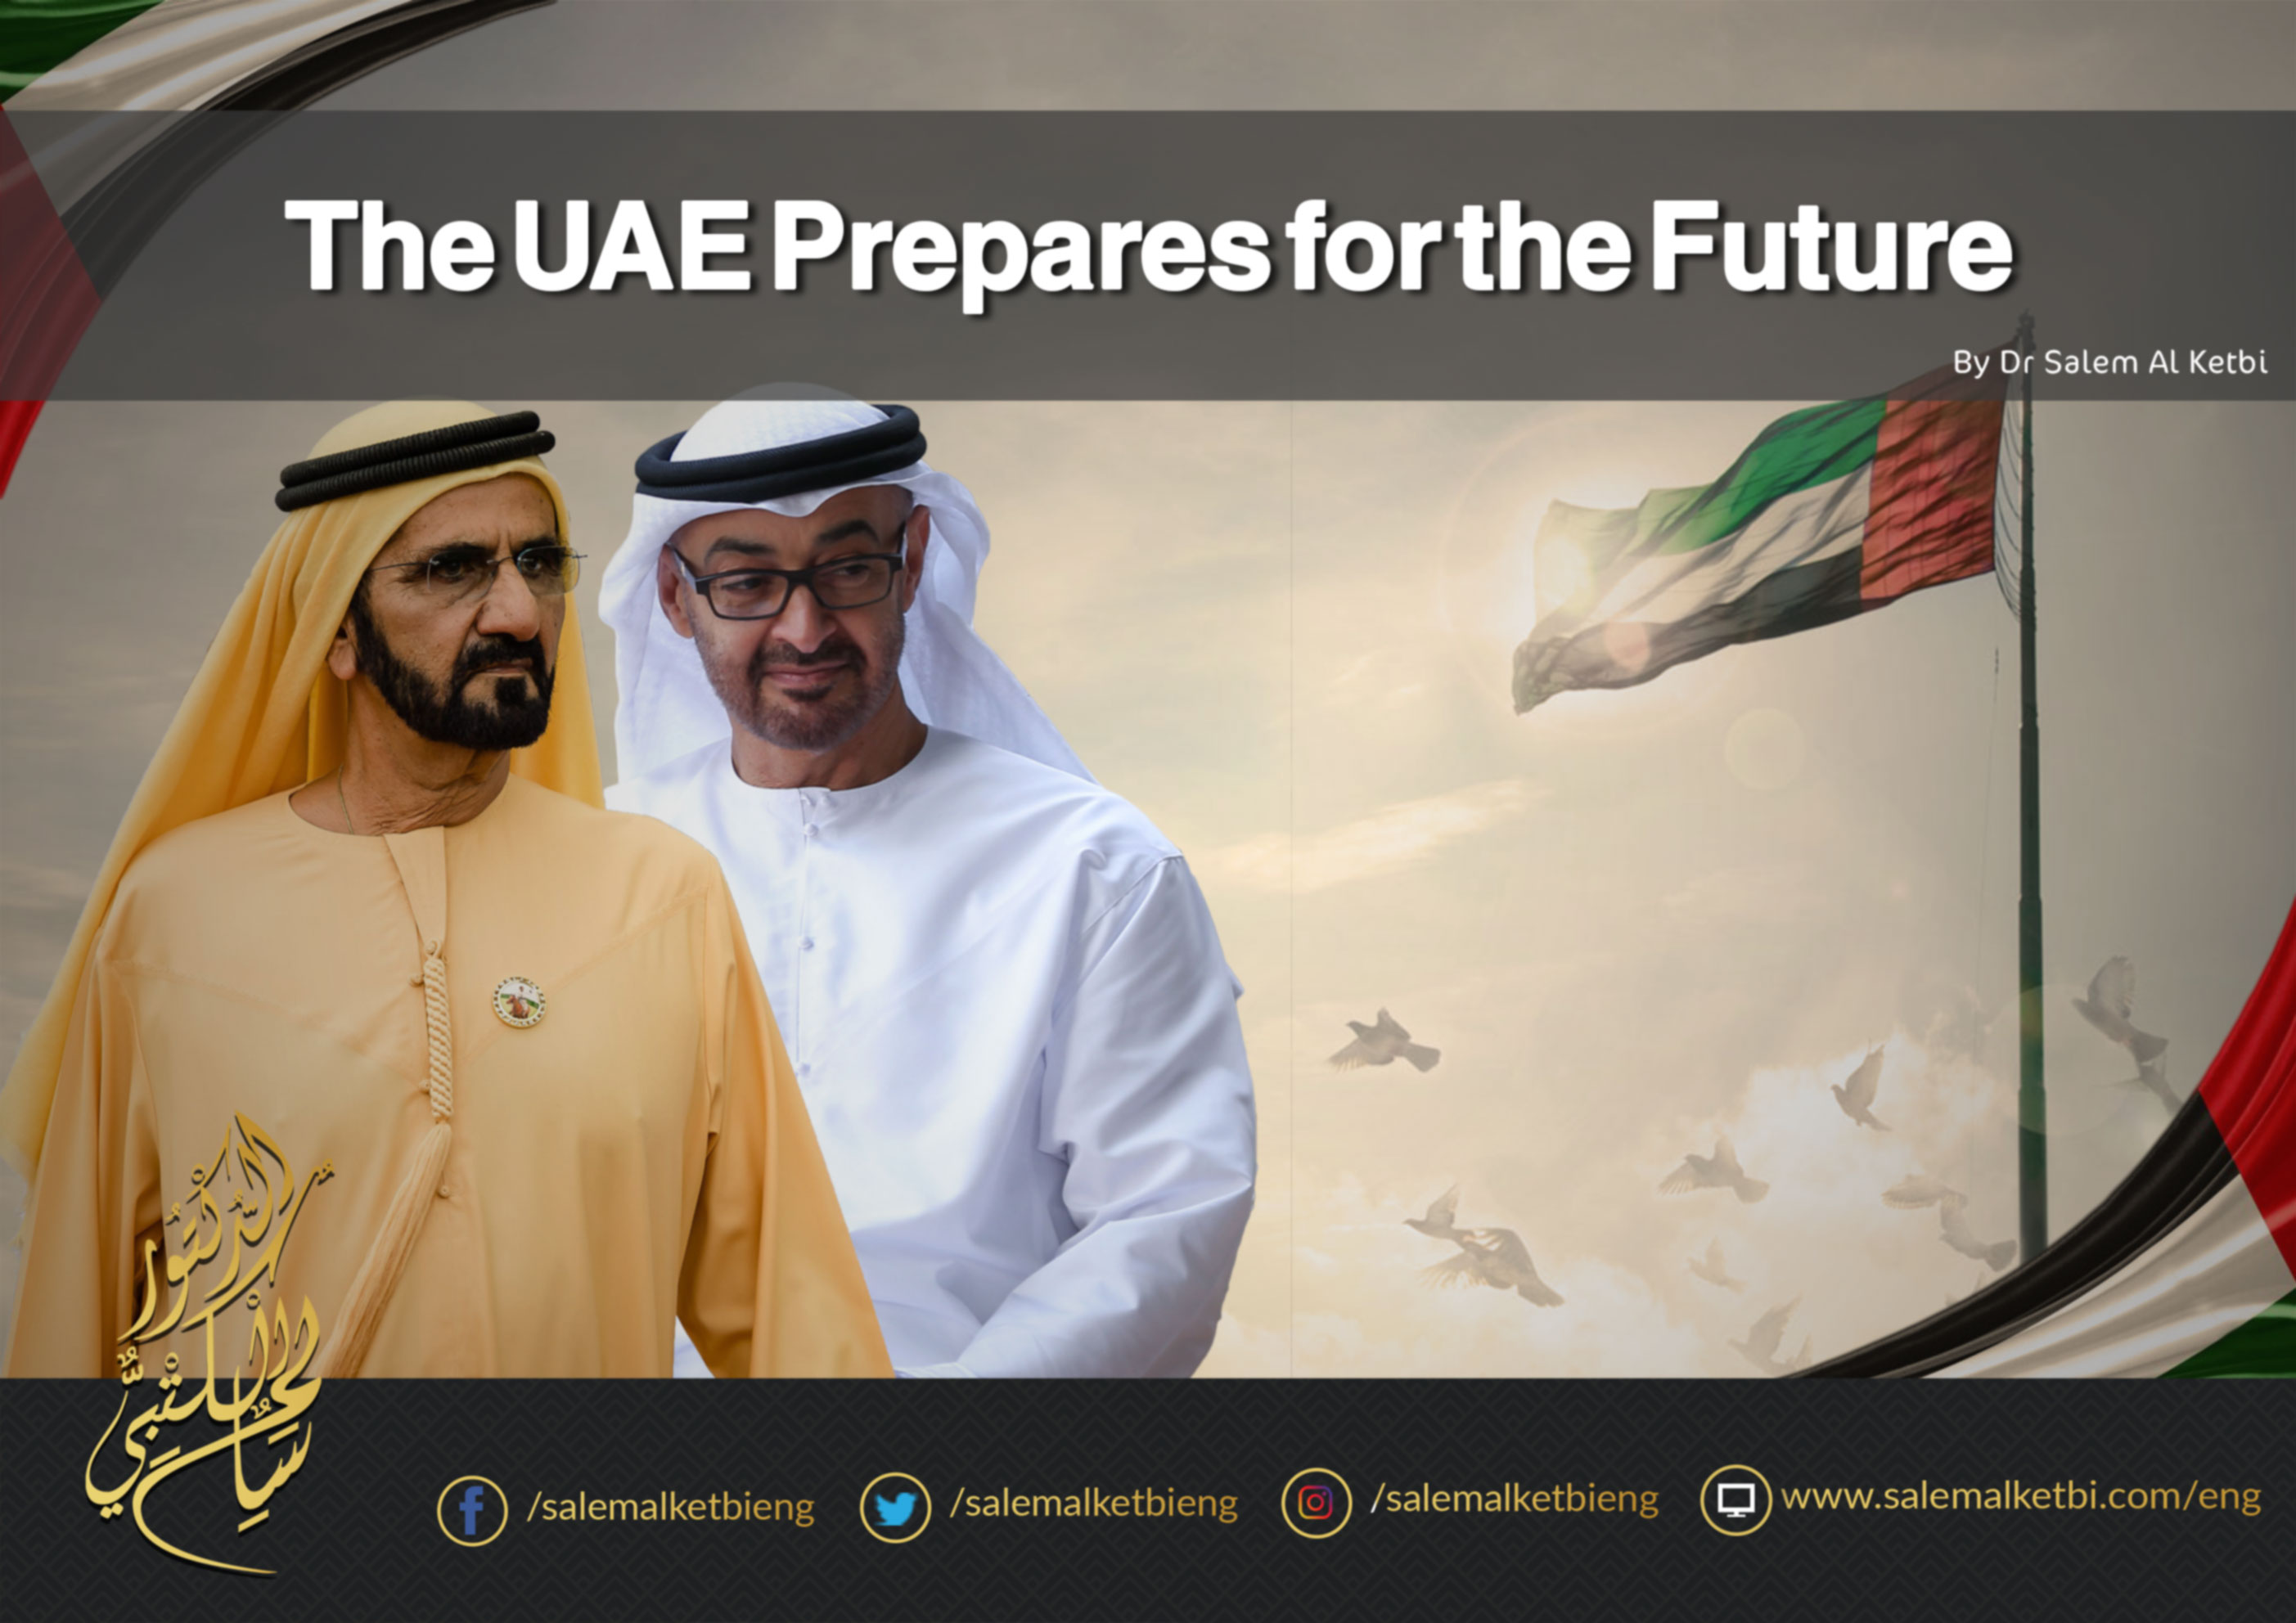 The UAE Prepares for the Future